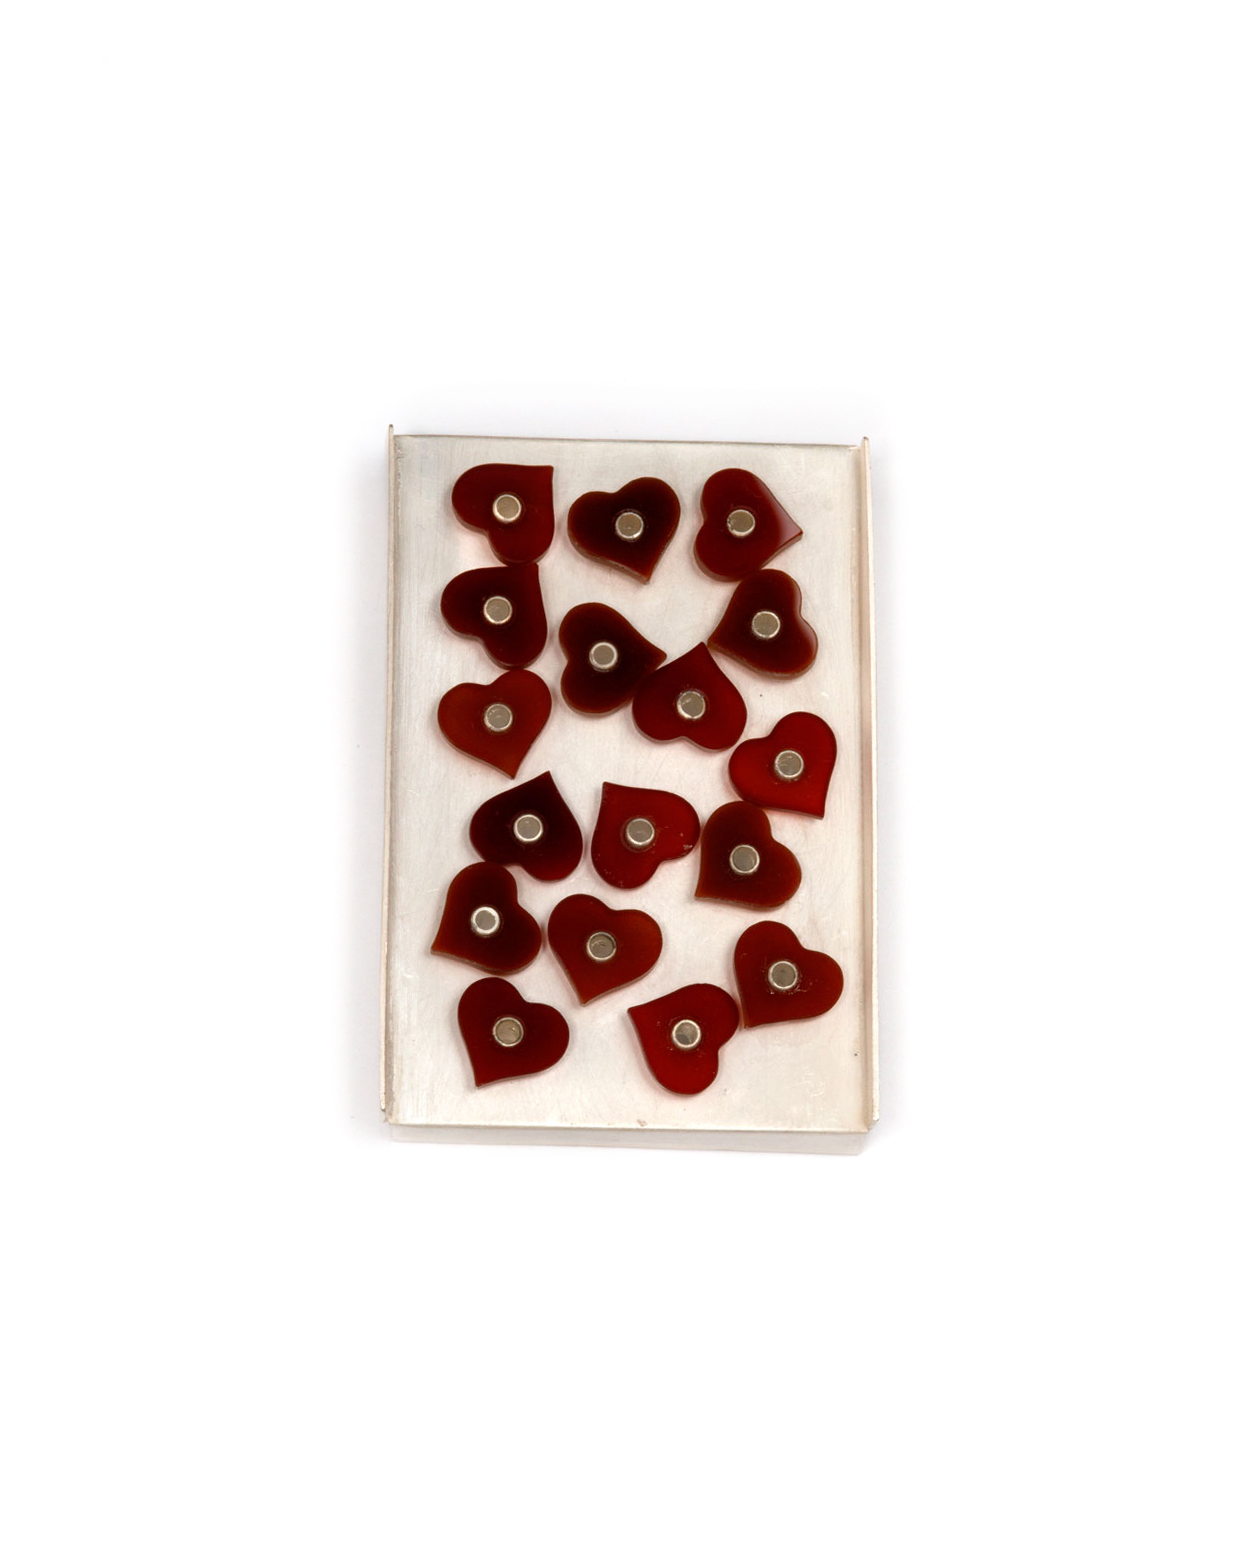 Winfried Krüger, untitled, 2006, brooch; silver, carnelian, 75 x 50 mm, €2180